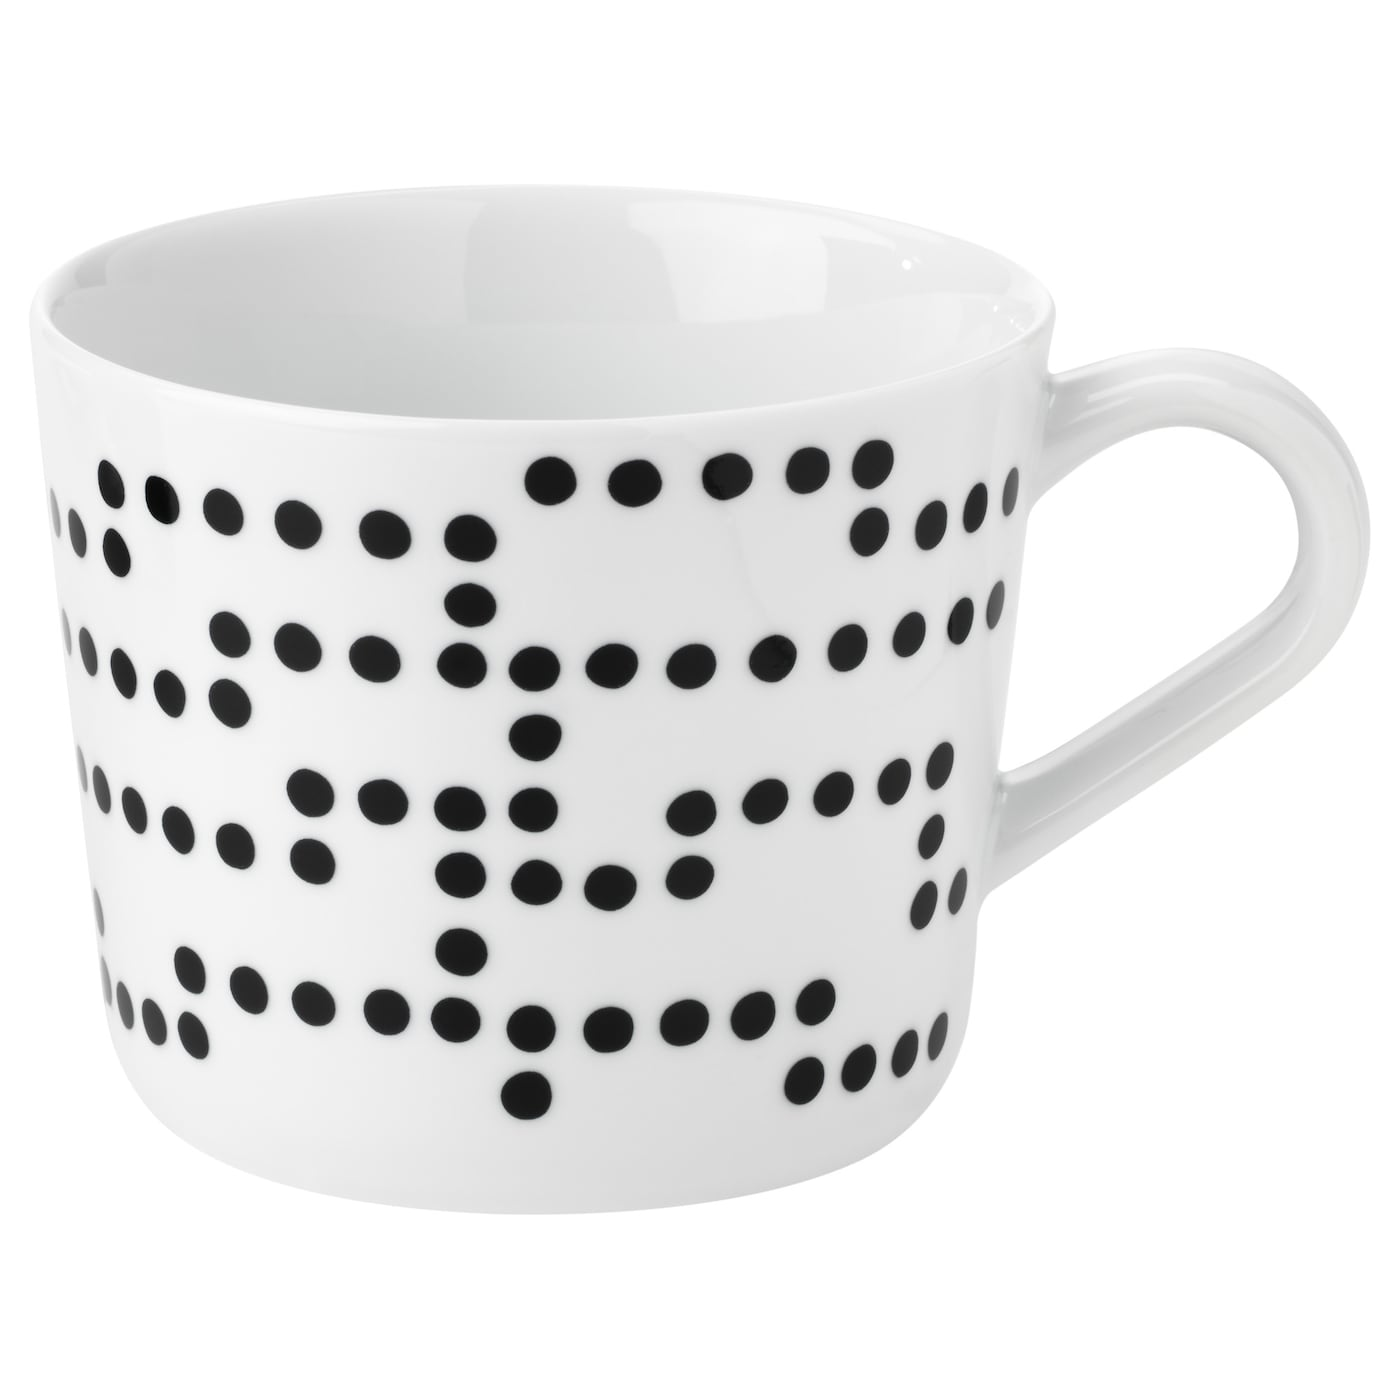 IKEA AVSIKTLIG mug Made of feldspar porcelain, which makes the mug impact resistant and durable.